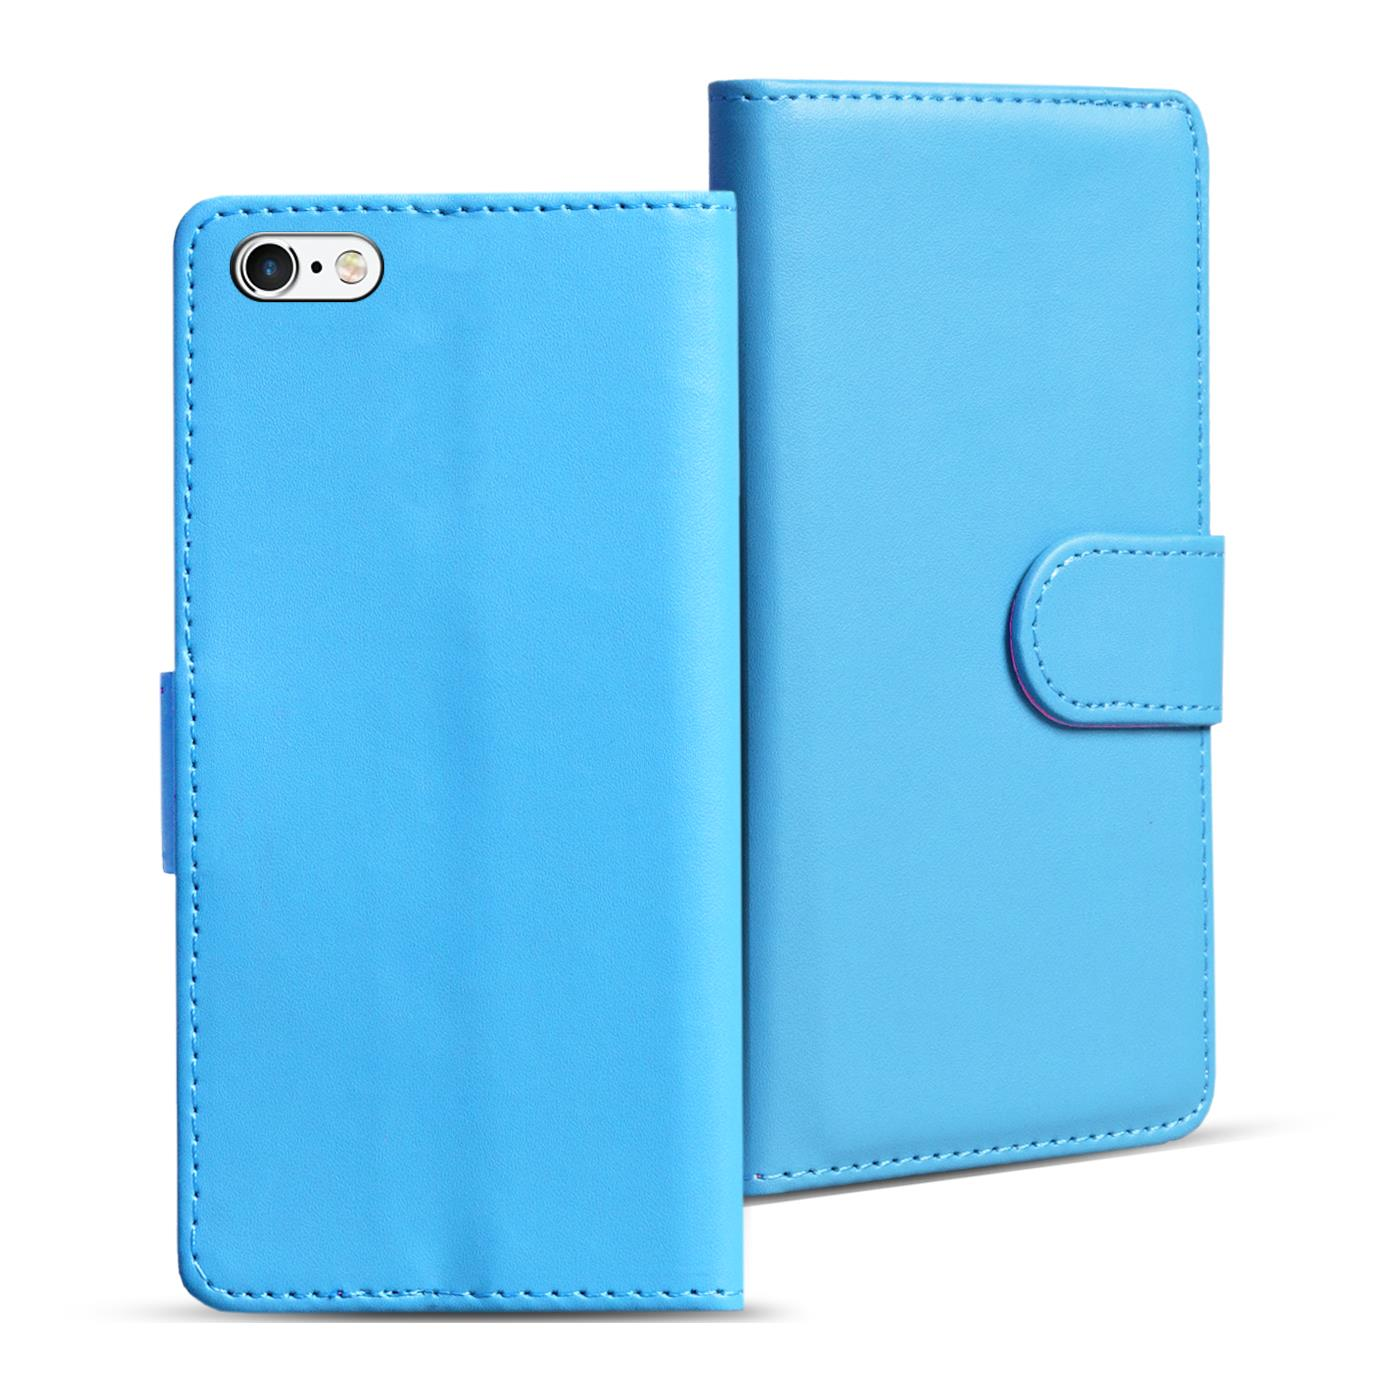 etui-de-portable-pour-Apple-iPhone-etui-de-protection-Coque-Protectrice-Basic